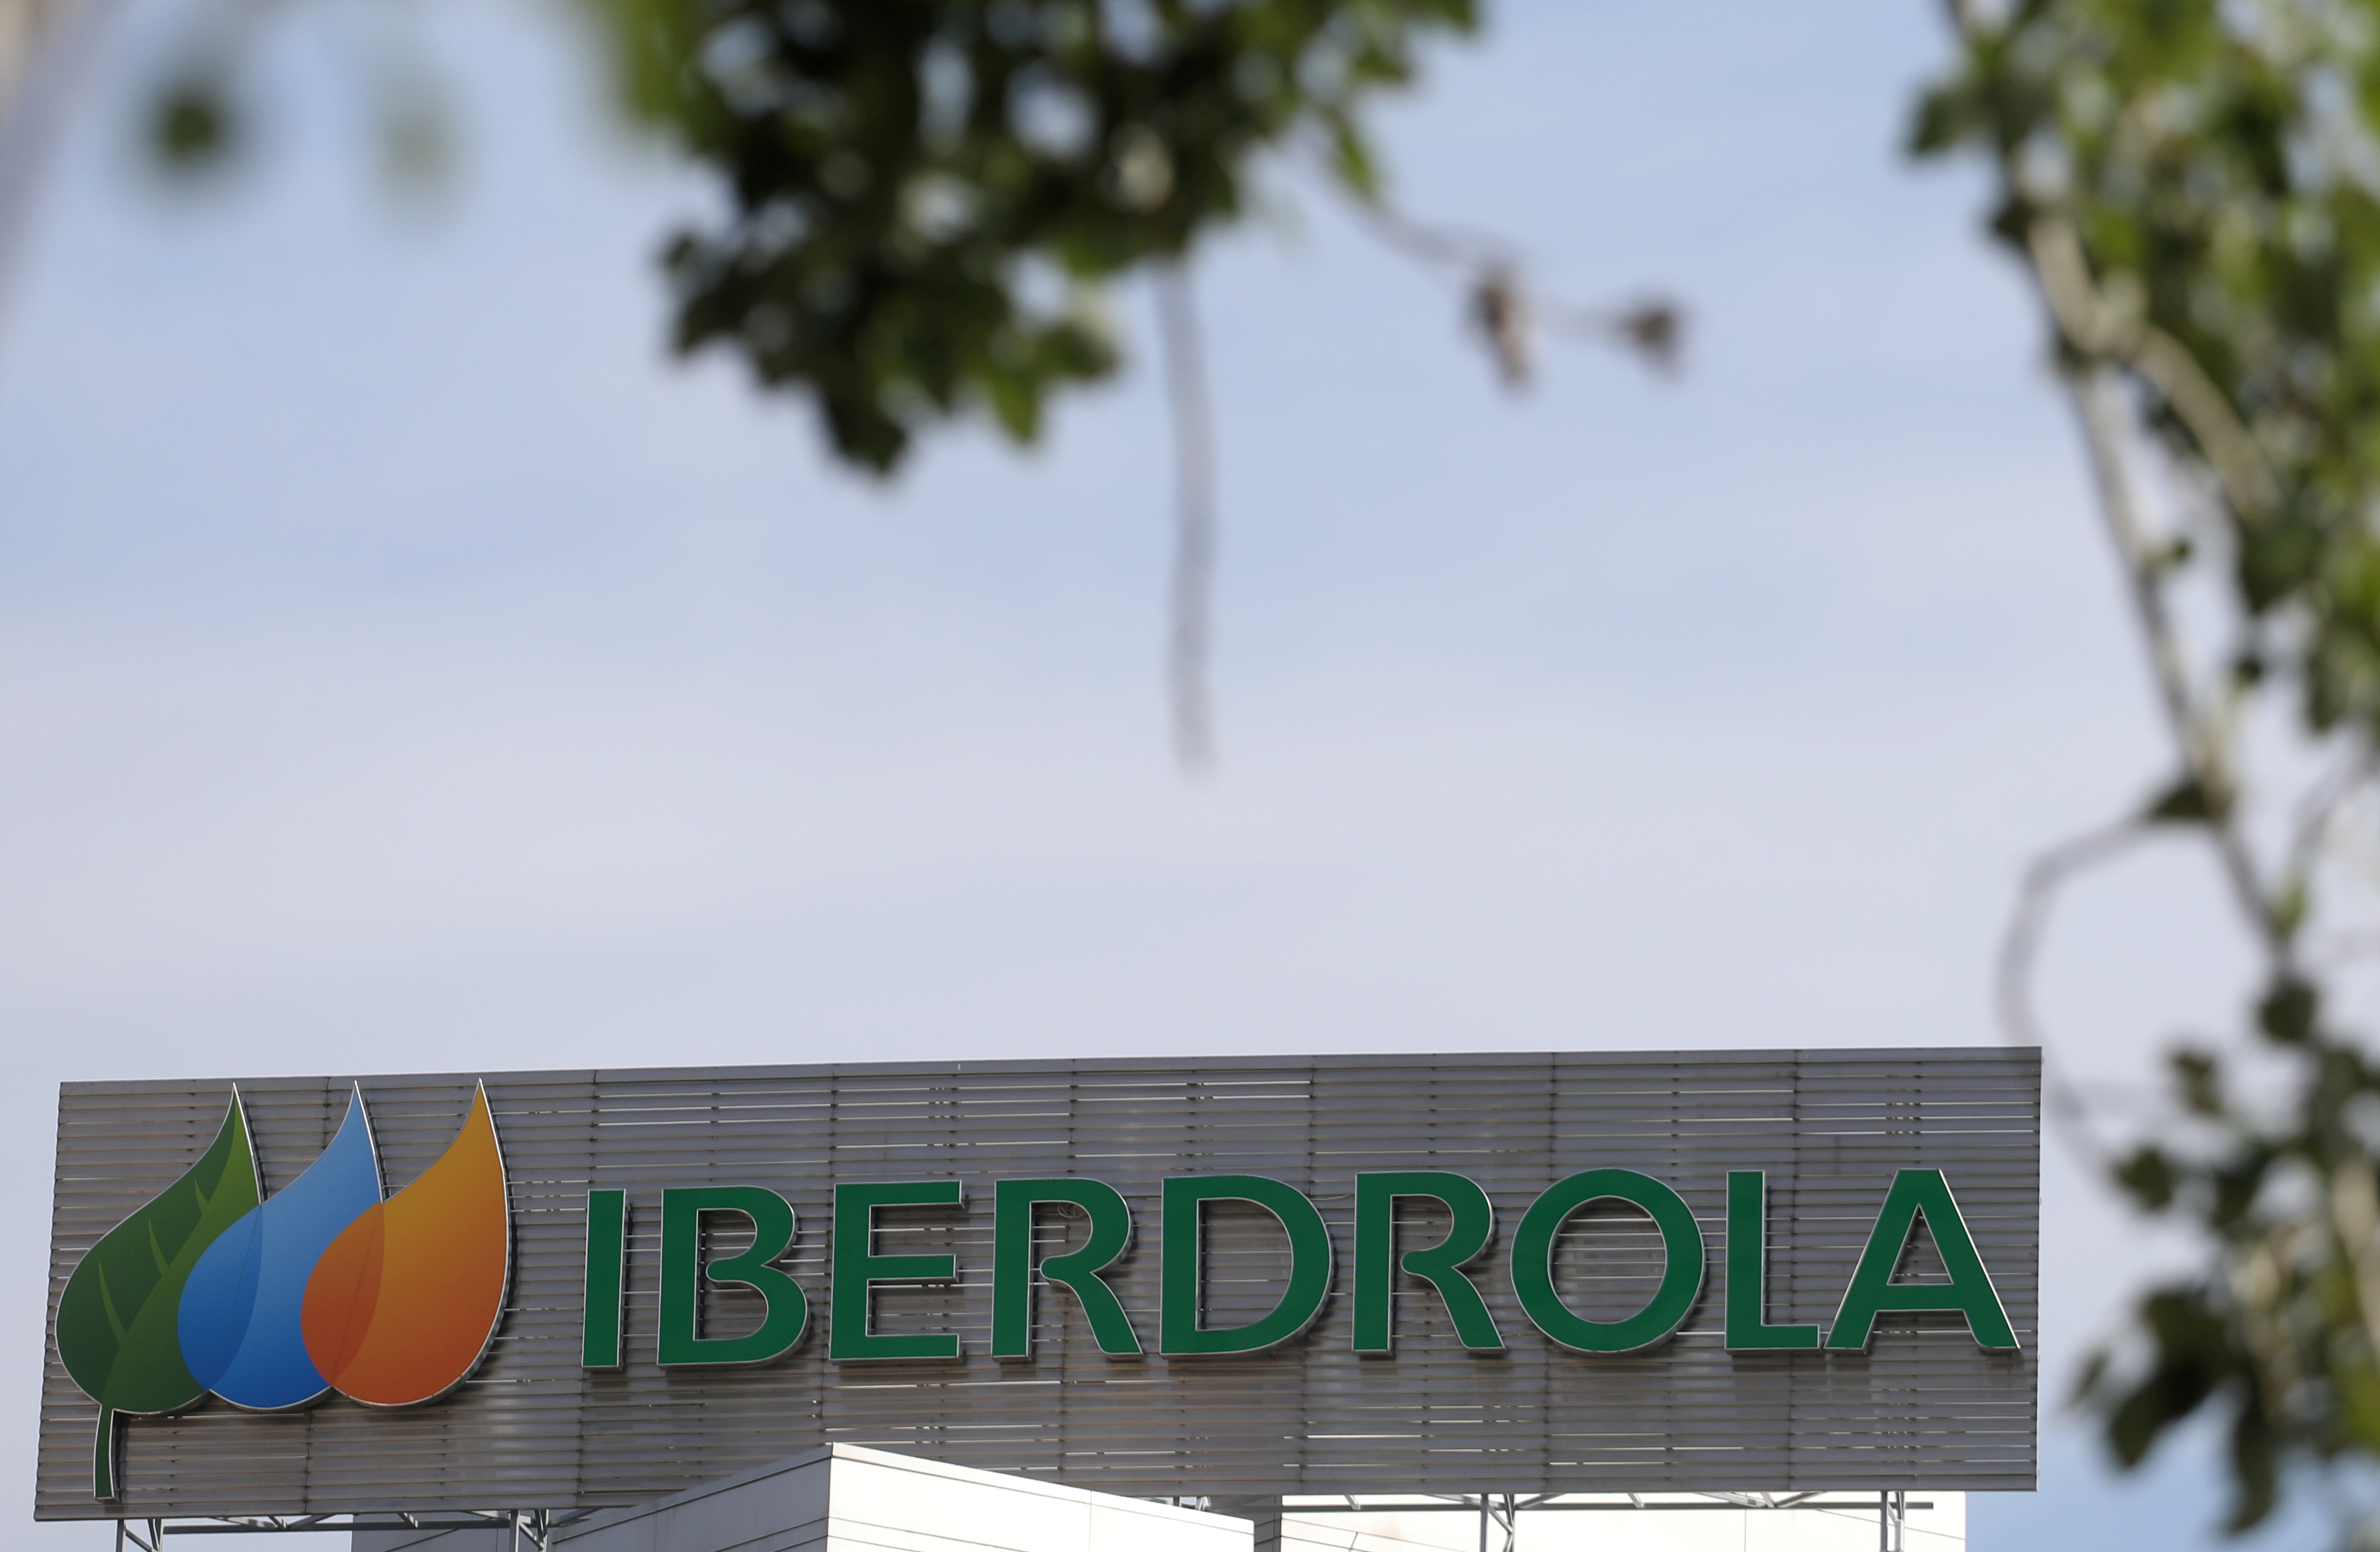 The logo of Spanish utility company Iberdrola is seen outside its headquarters in Madrid, Spain, May 23, 2018. REUTERS/Sergio Perez